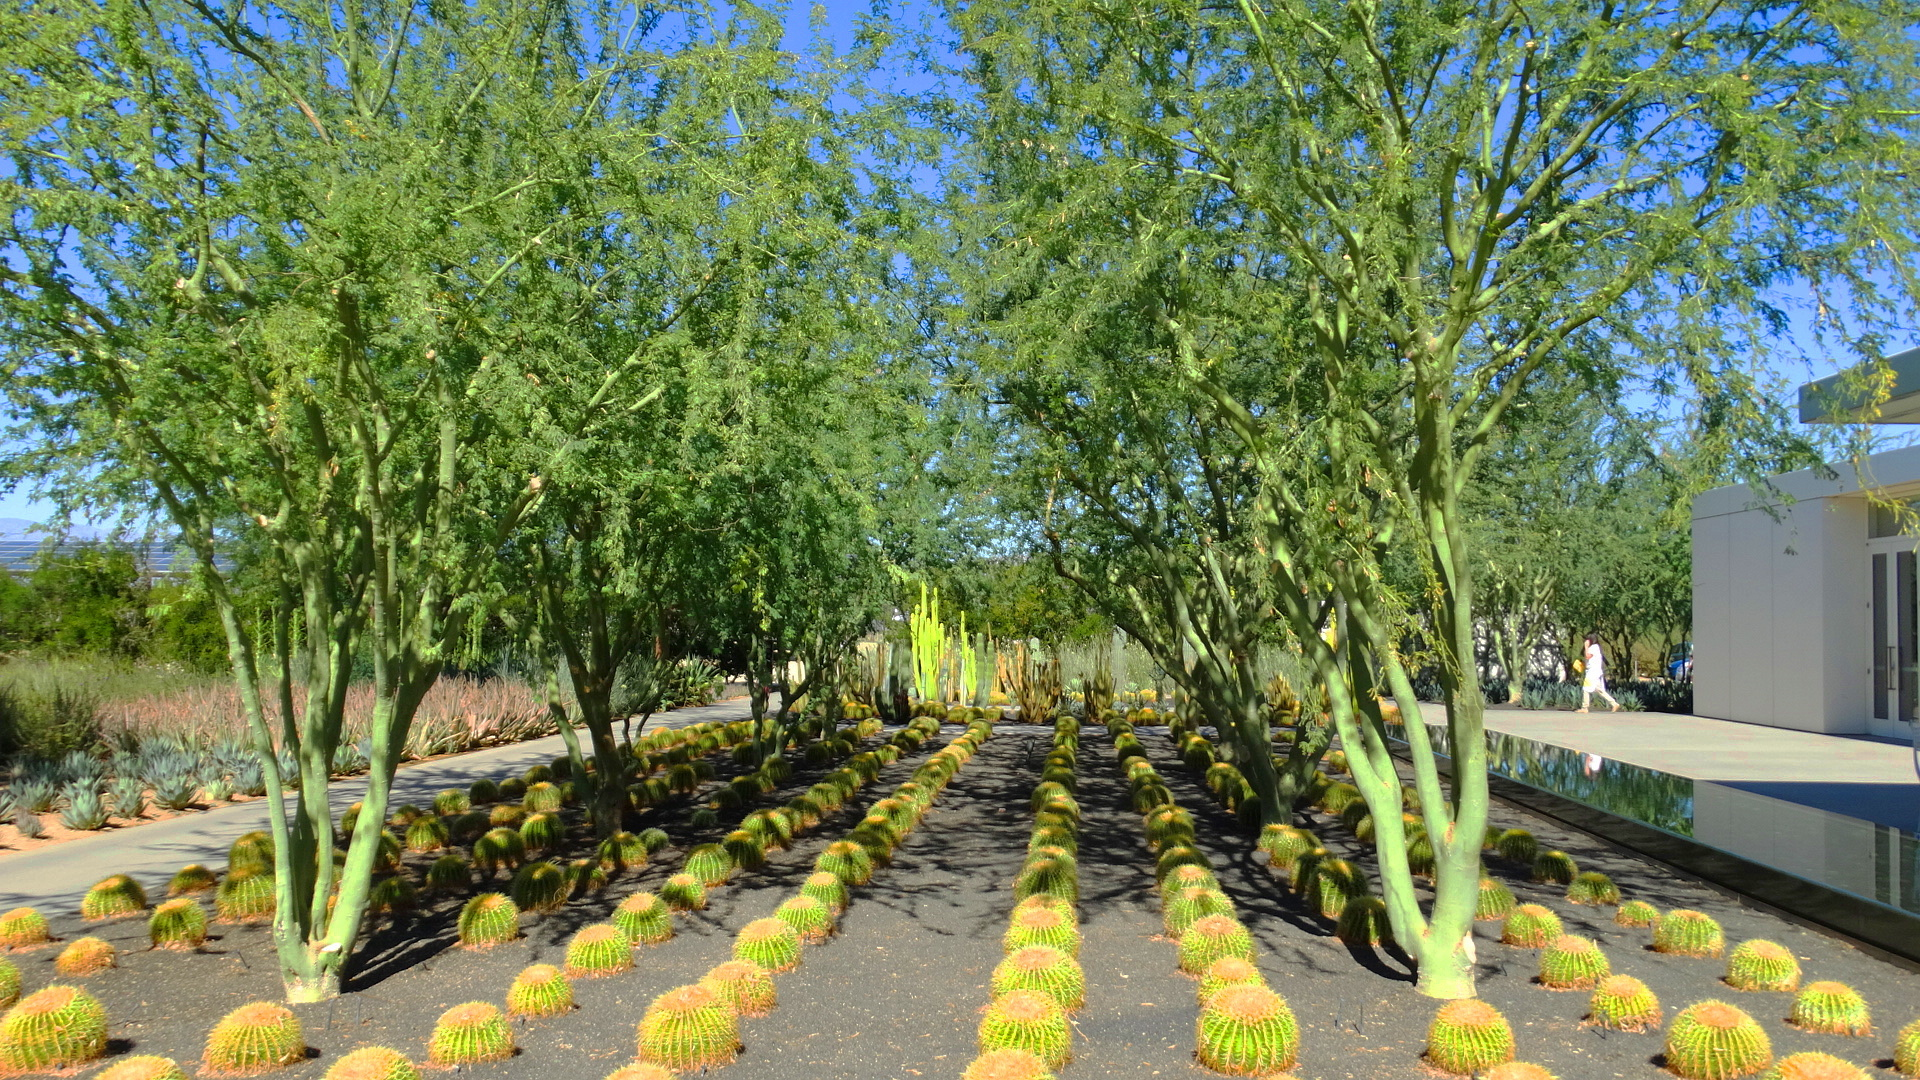 Plants of the mojave ii the anneberg gardens for Landscape trees